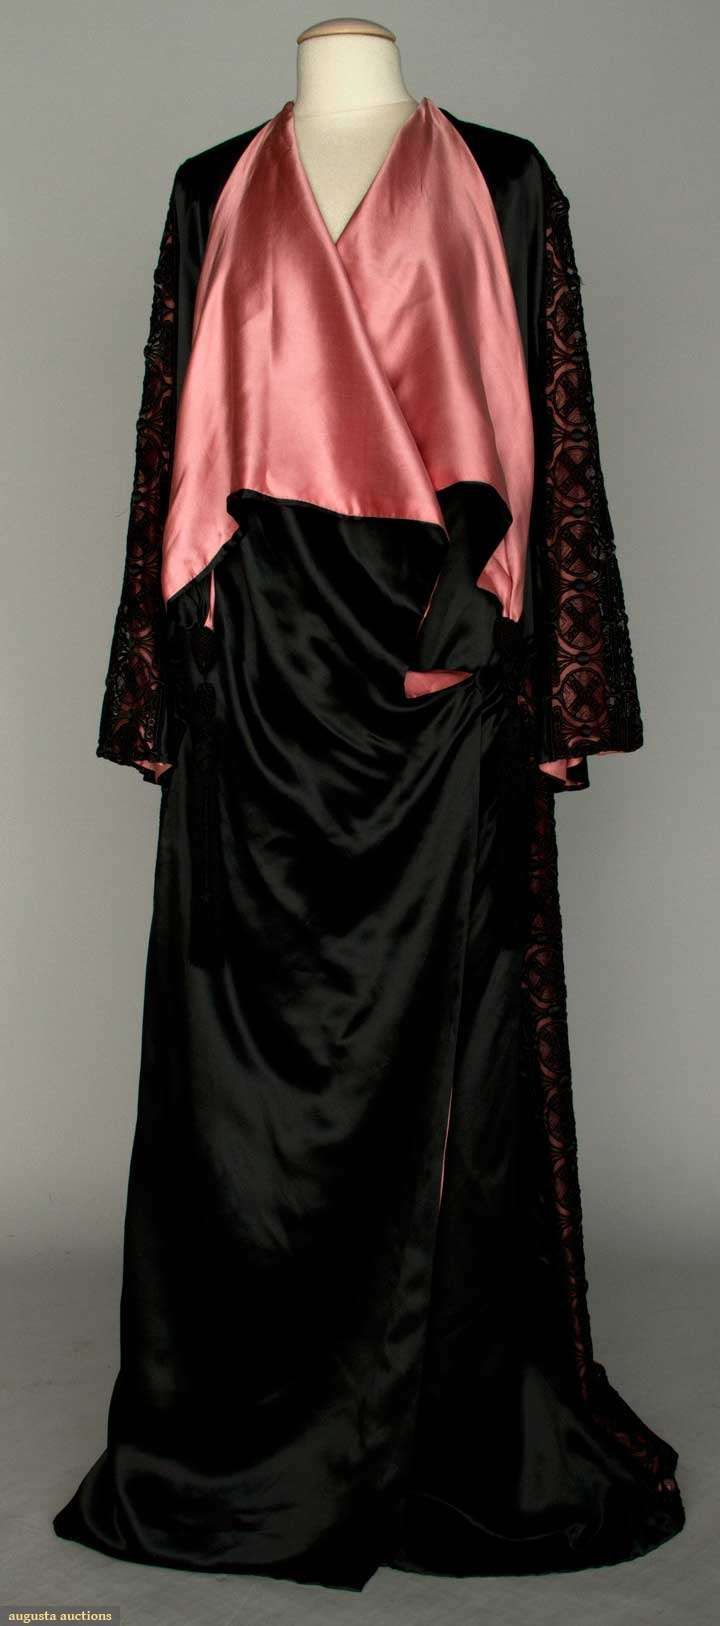 Augusta Auctions: silk satin evening coat, paris, black w/ raspberry charmeuse lining, embroidered net lace bands on shoulders, sleeves & sides of coat- 1910-1915